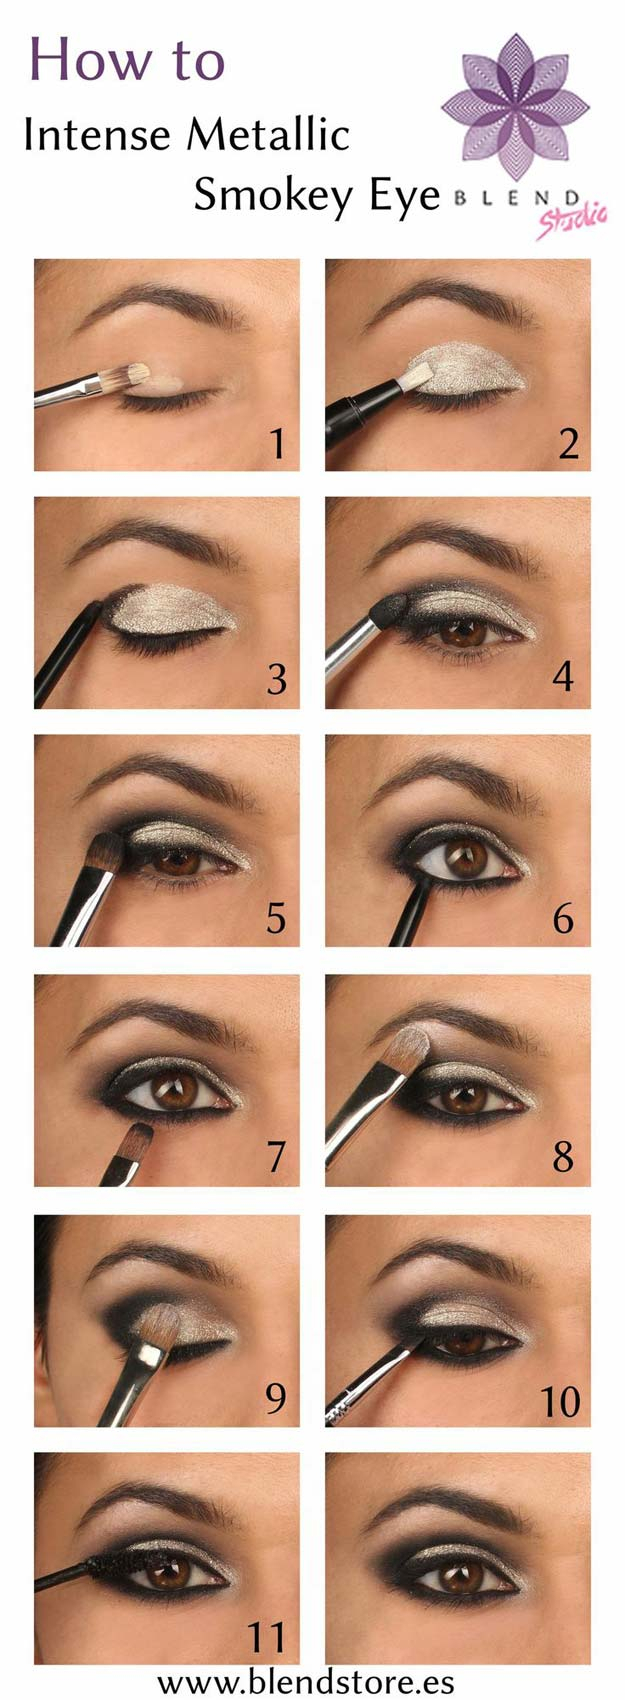 10 Lovable Prom Makeup Ideas For Hazel Eyes 38 makeup ideas for prom the goddess 2021